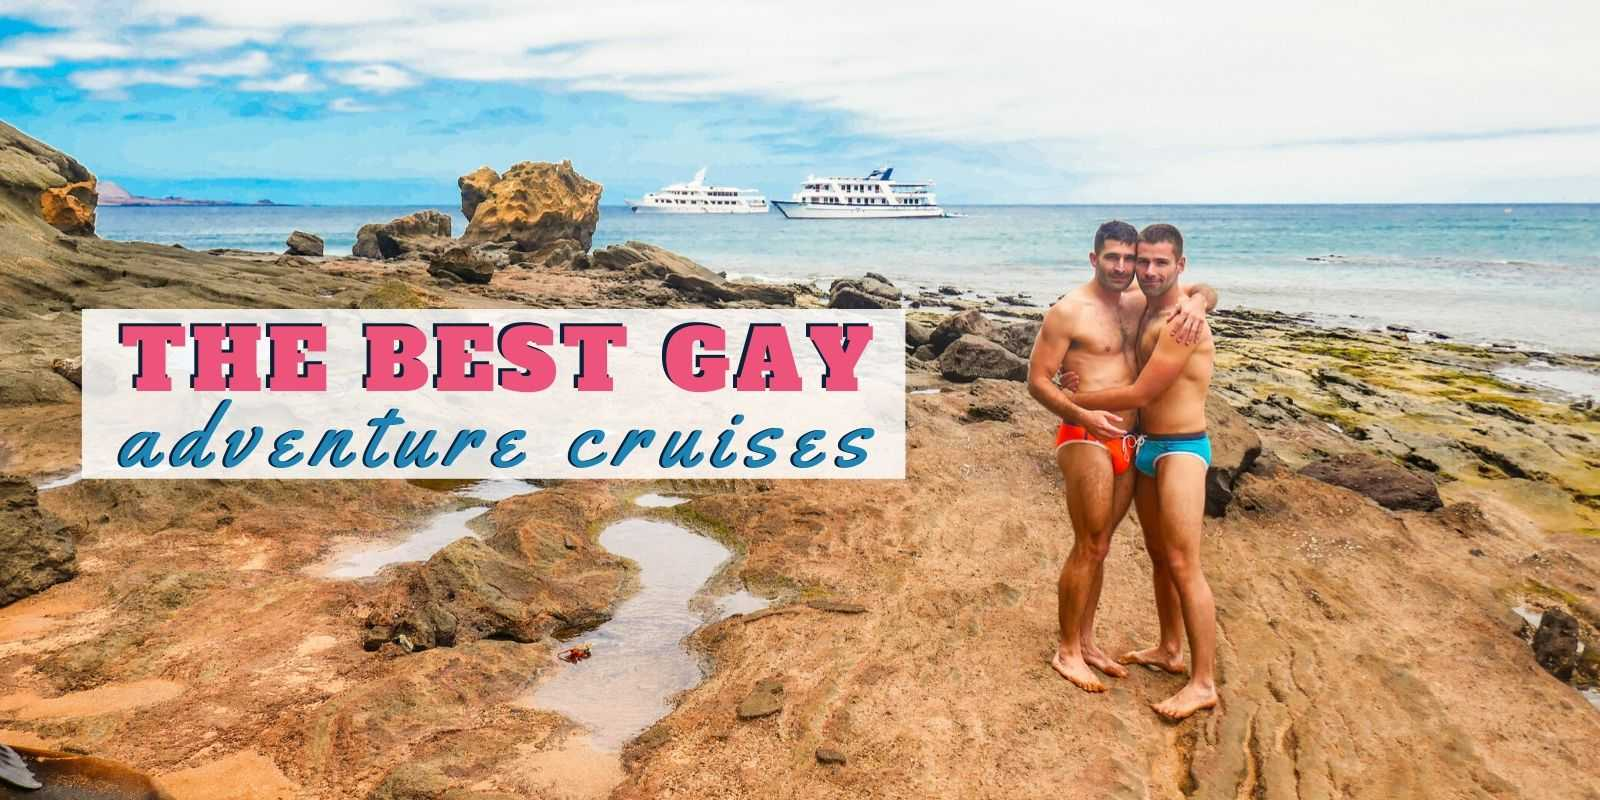 Check out the best gay adventure cruises to the most exciting destinations